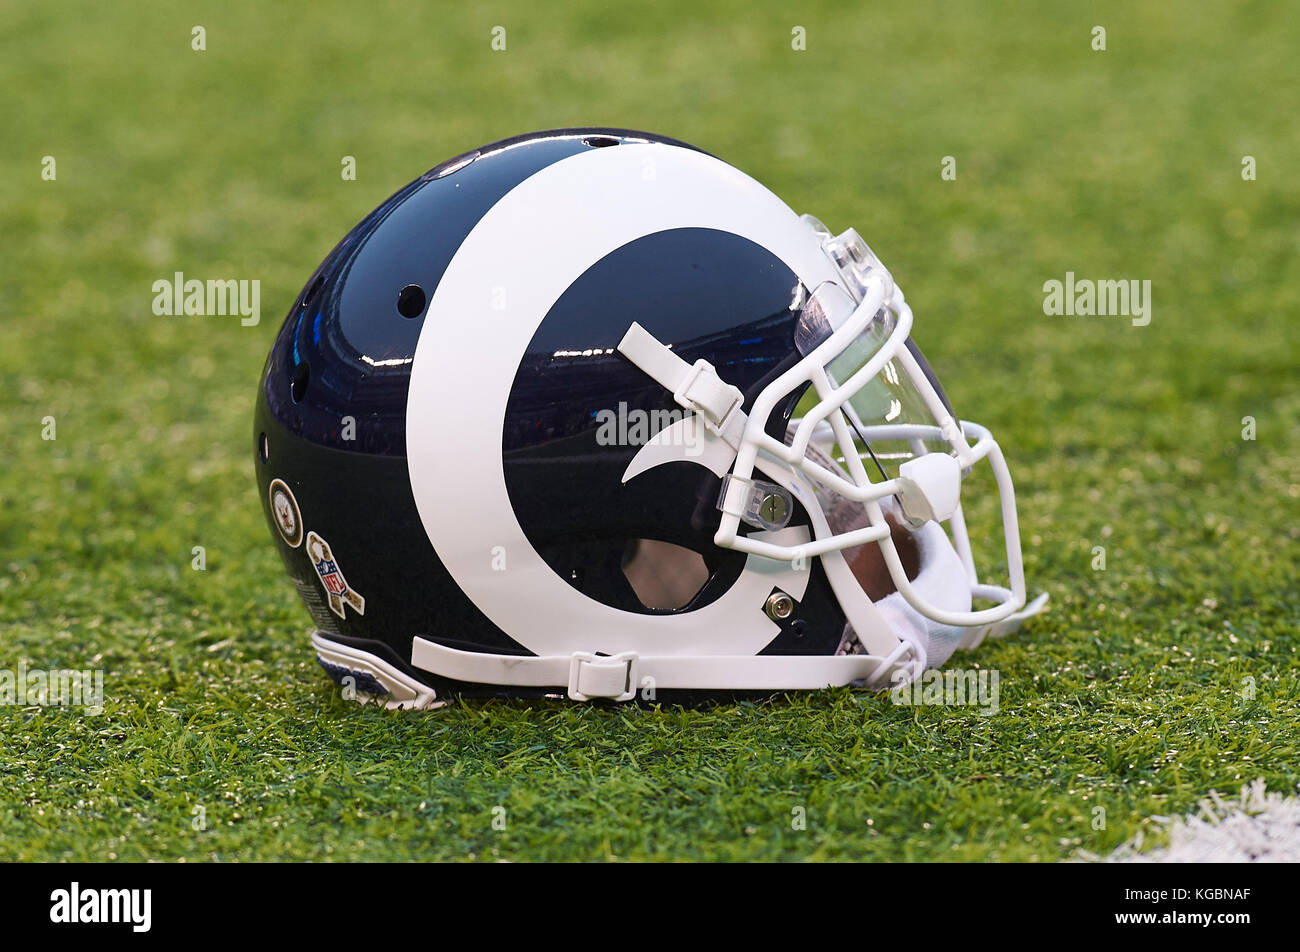 East Rutherford, New Jersey, USA. 5th Nov, 2017. A Rams' helmet during warm up prior to NFL action between the - Stock Image